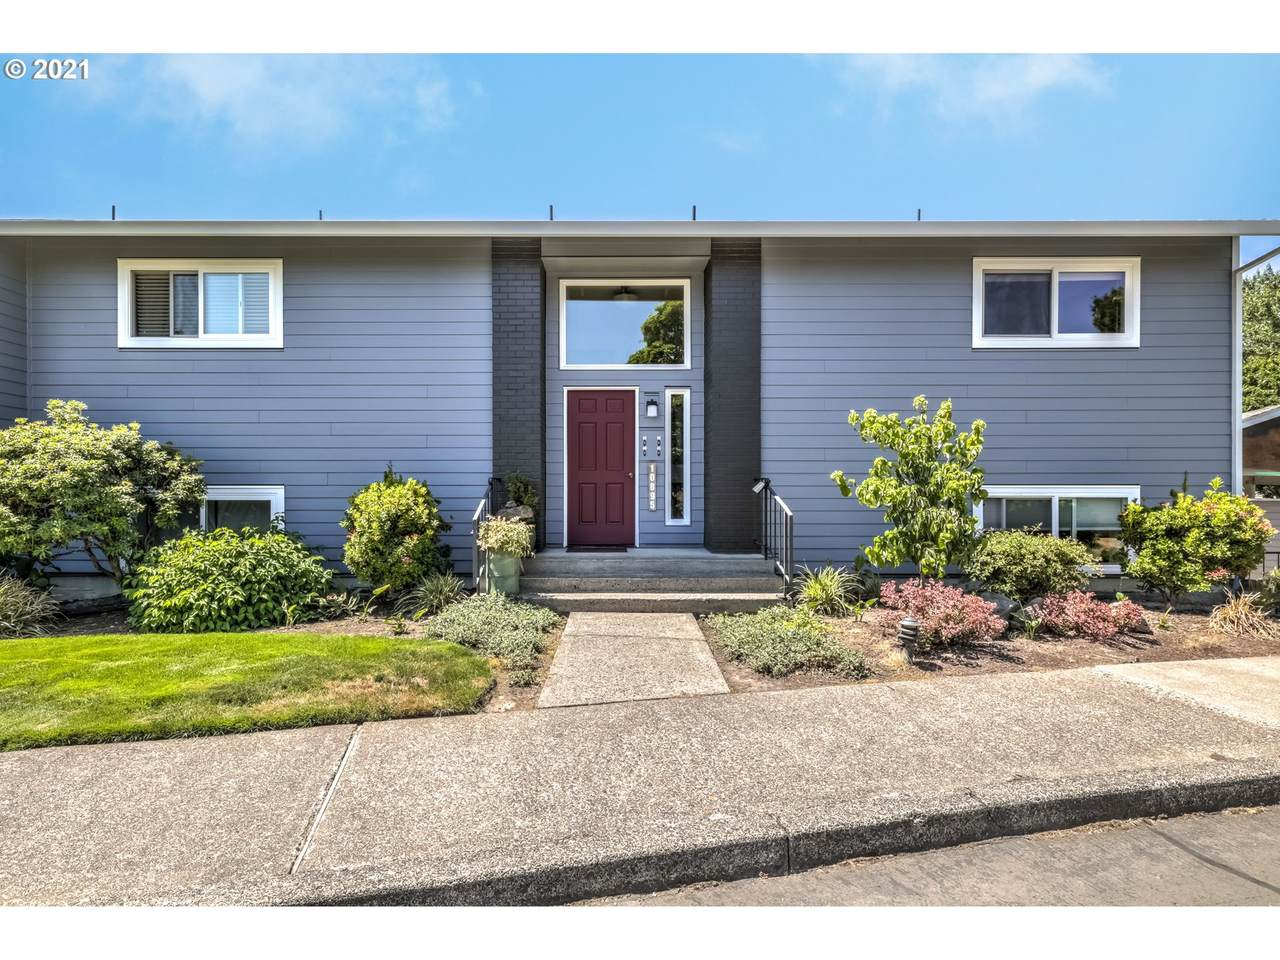 10895 Meadowbrook Dr - Photo 1